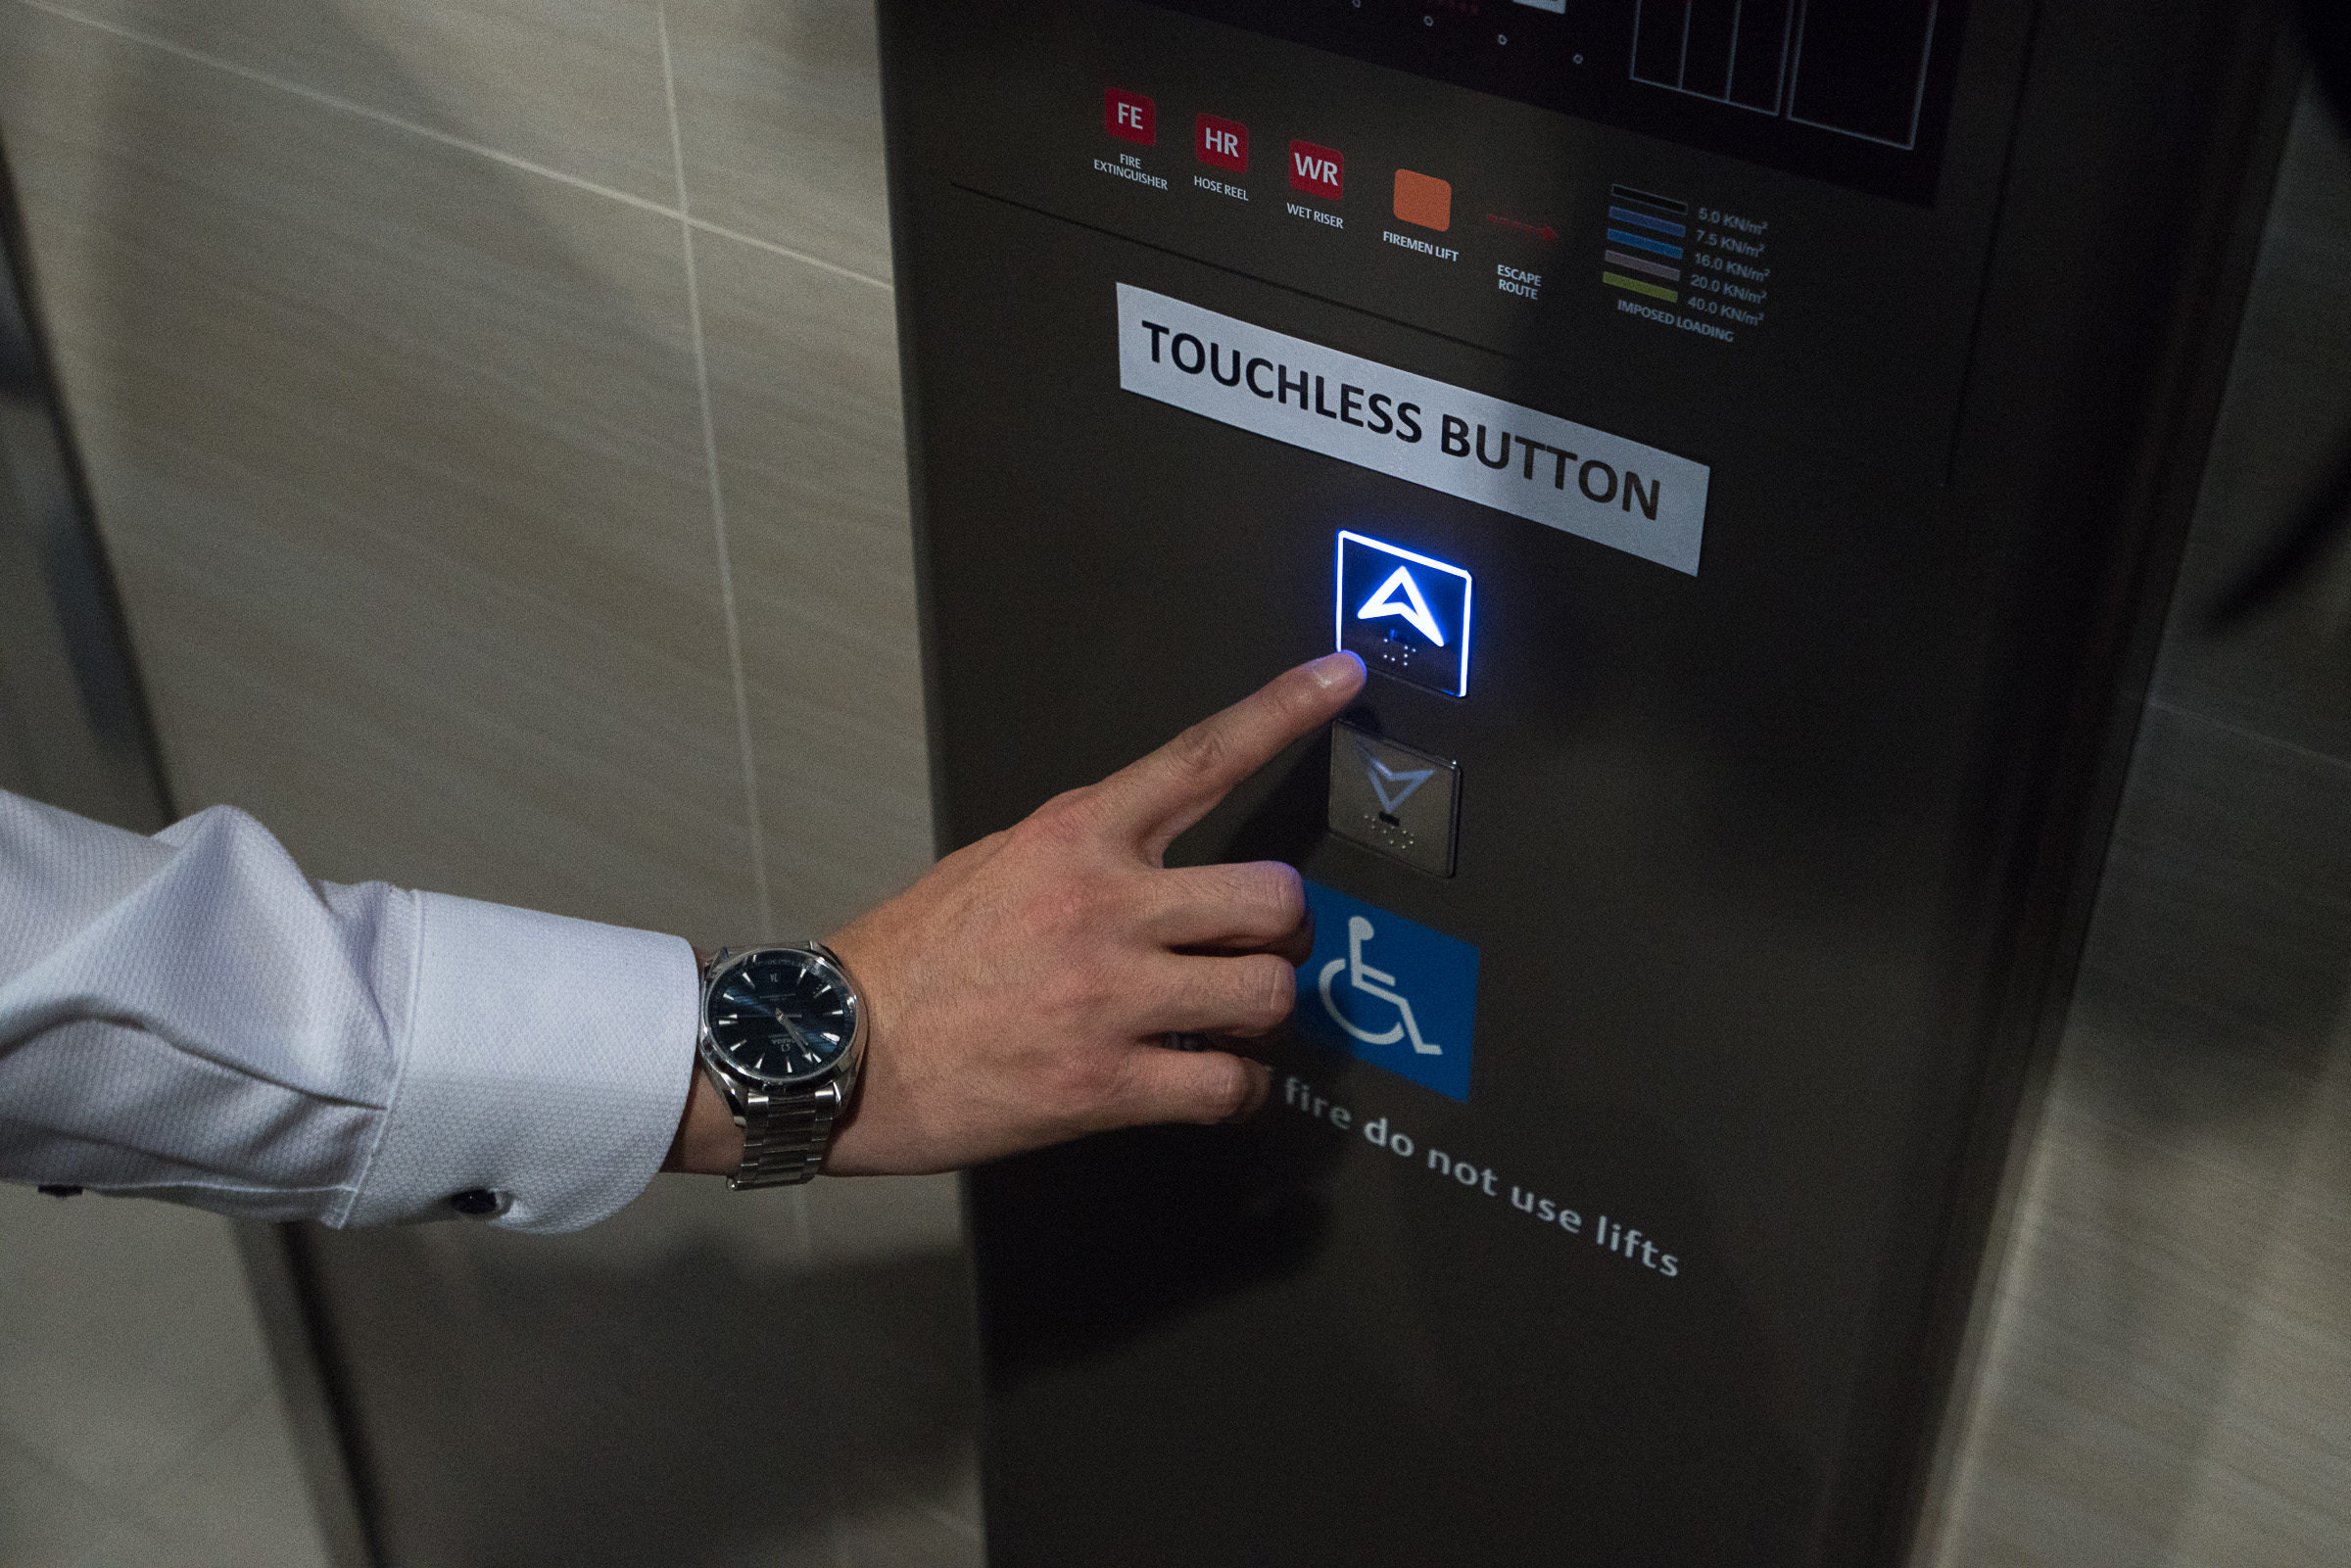 touchless lift button